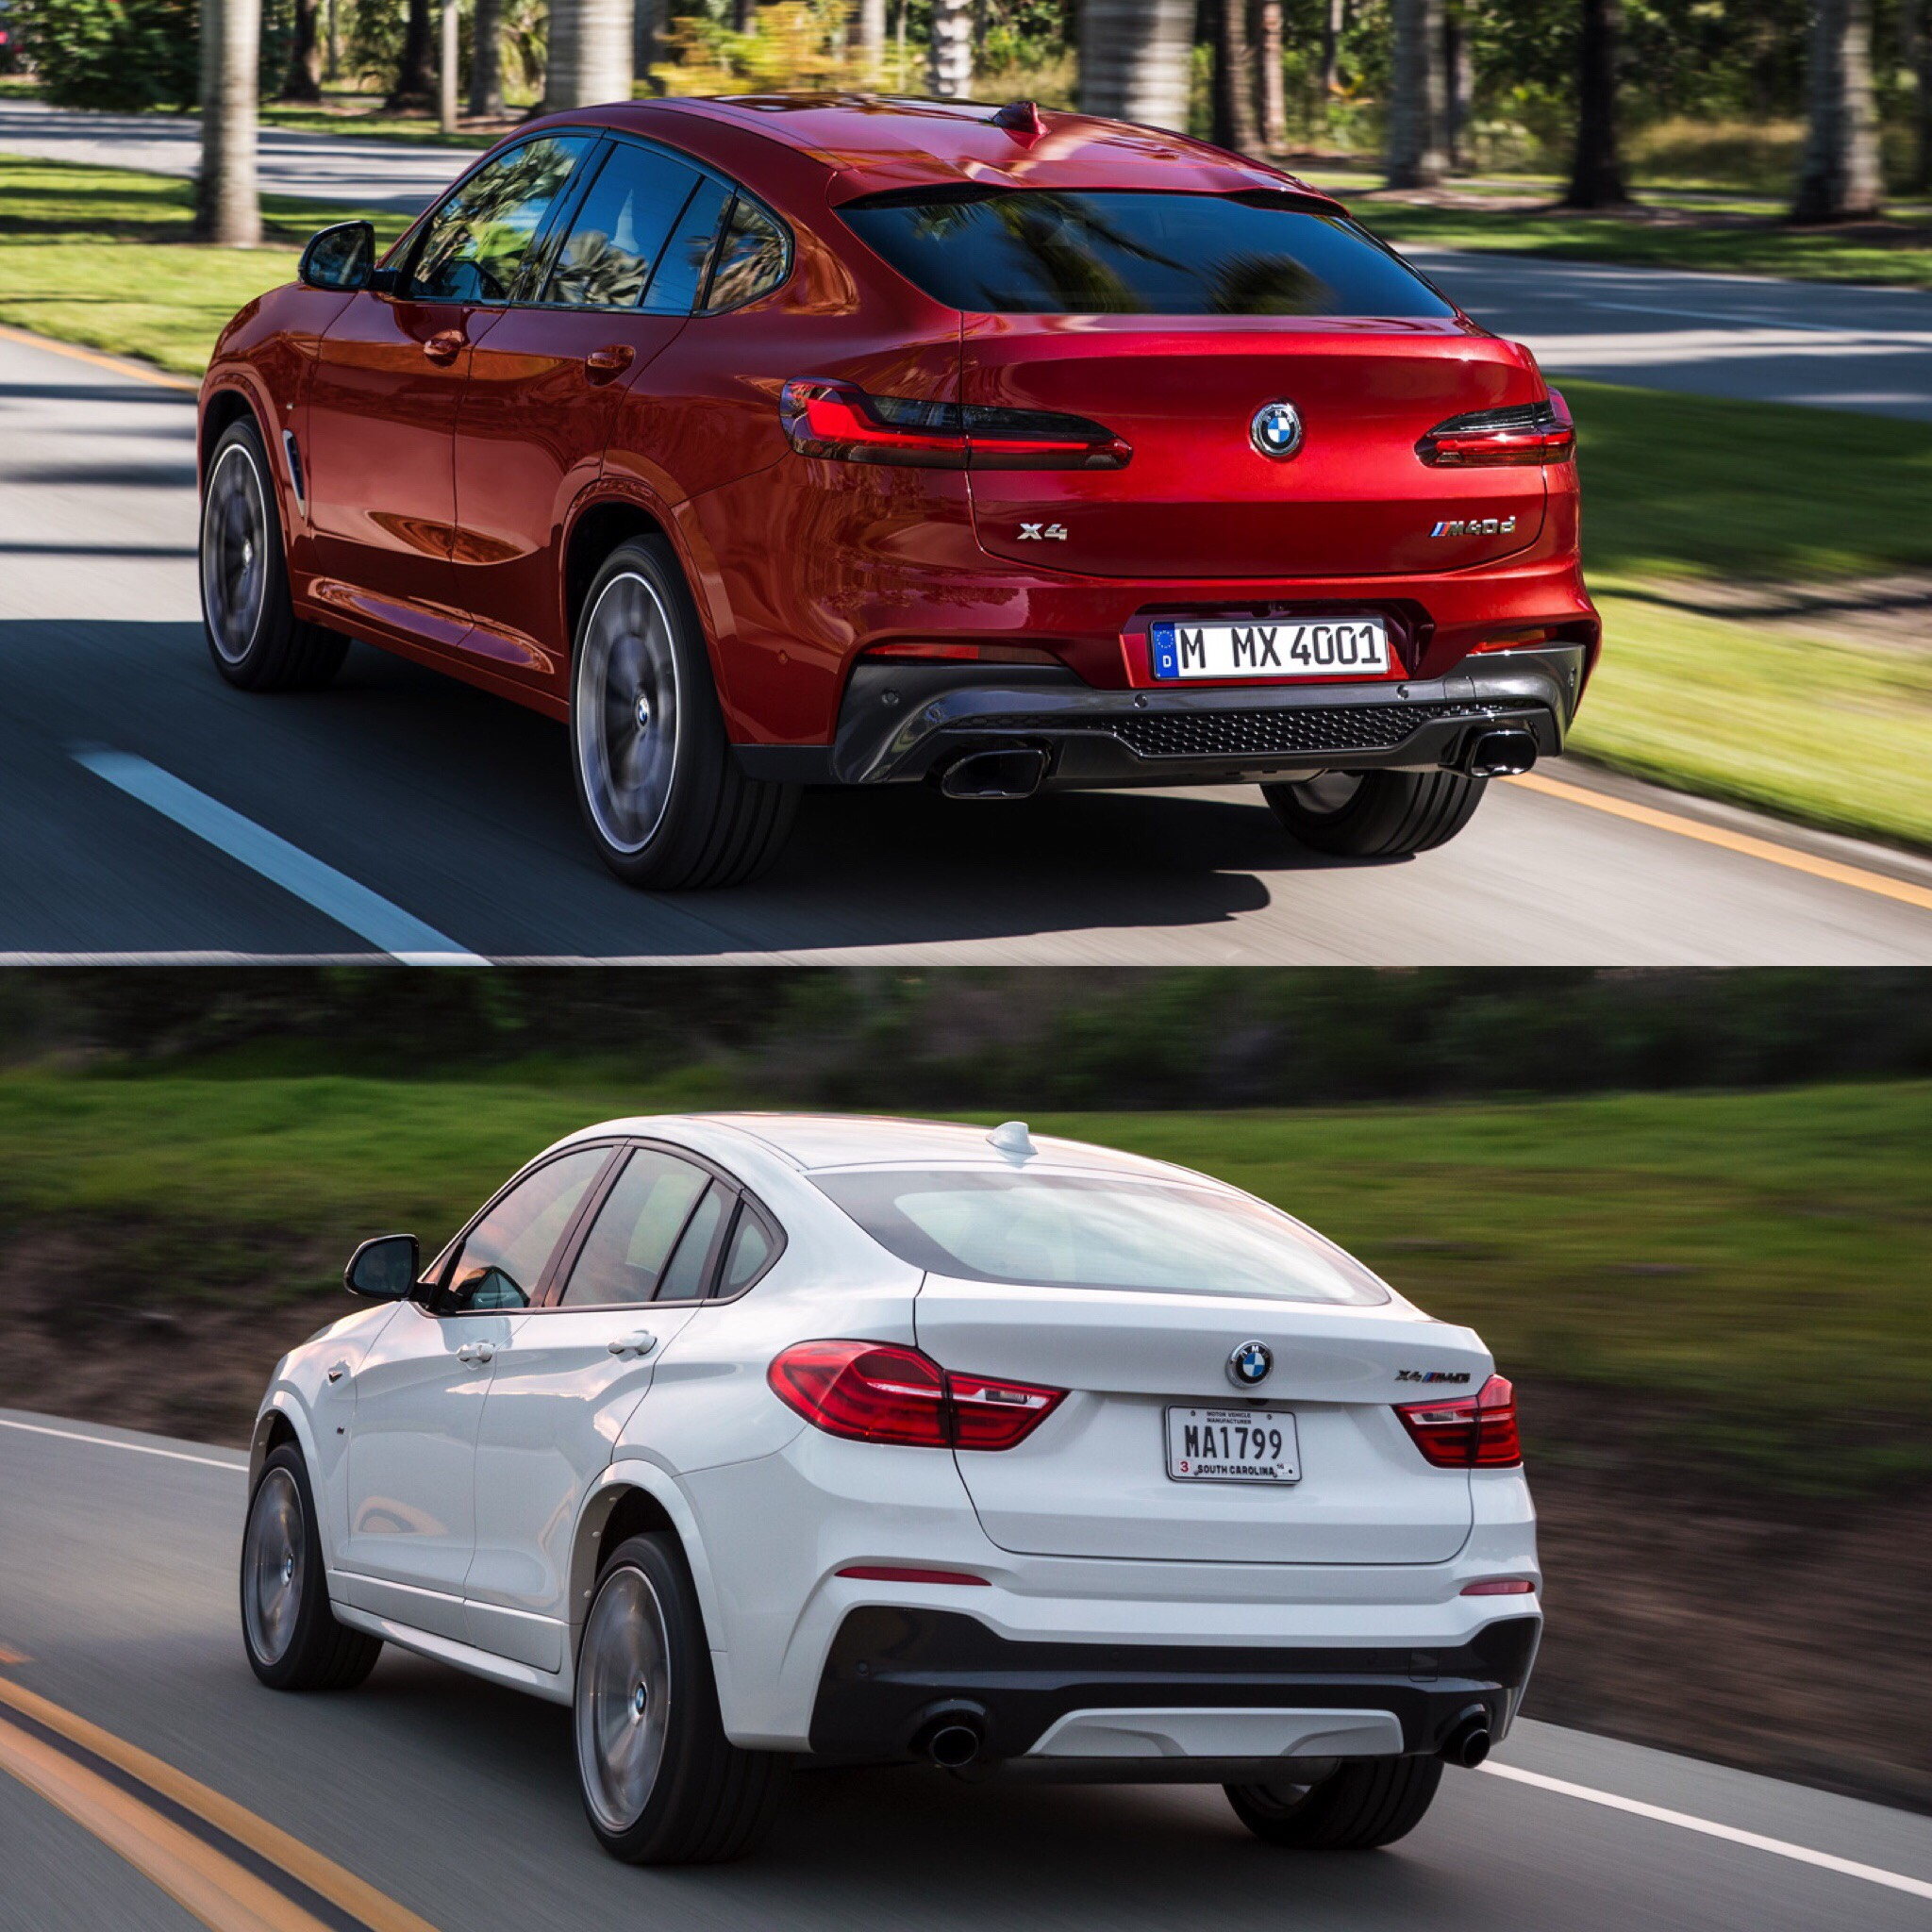 Photo Comparison F26 BMW X4 Vs G02 BMW X4 Old Vs New